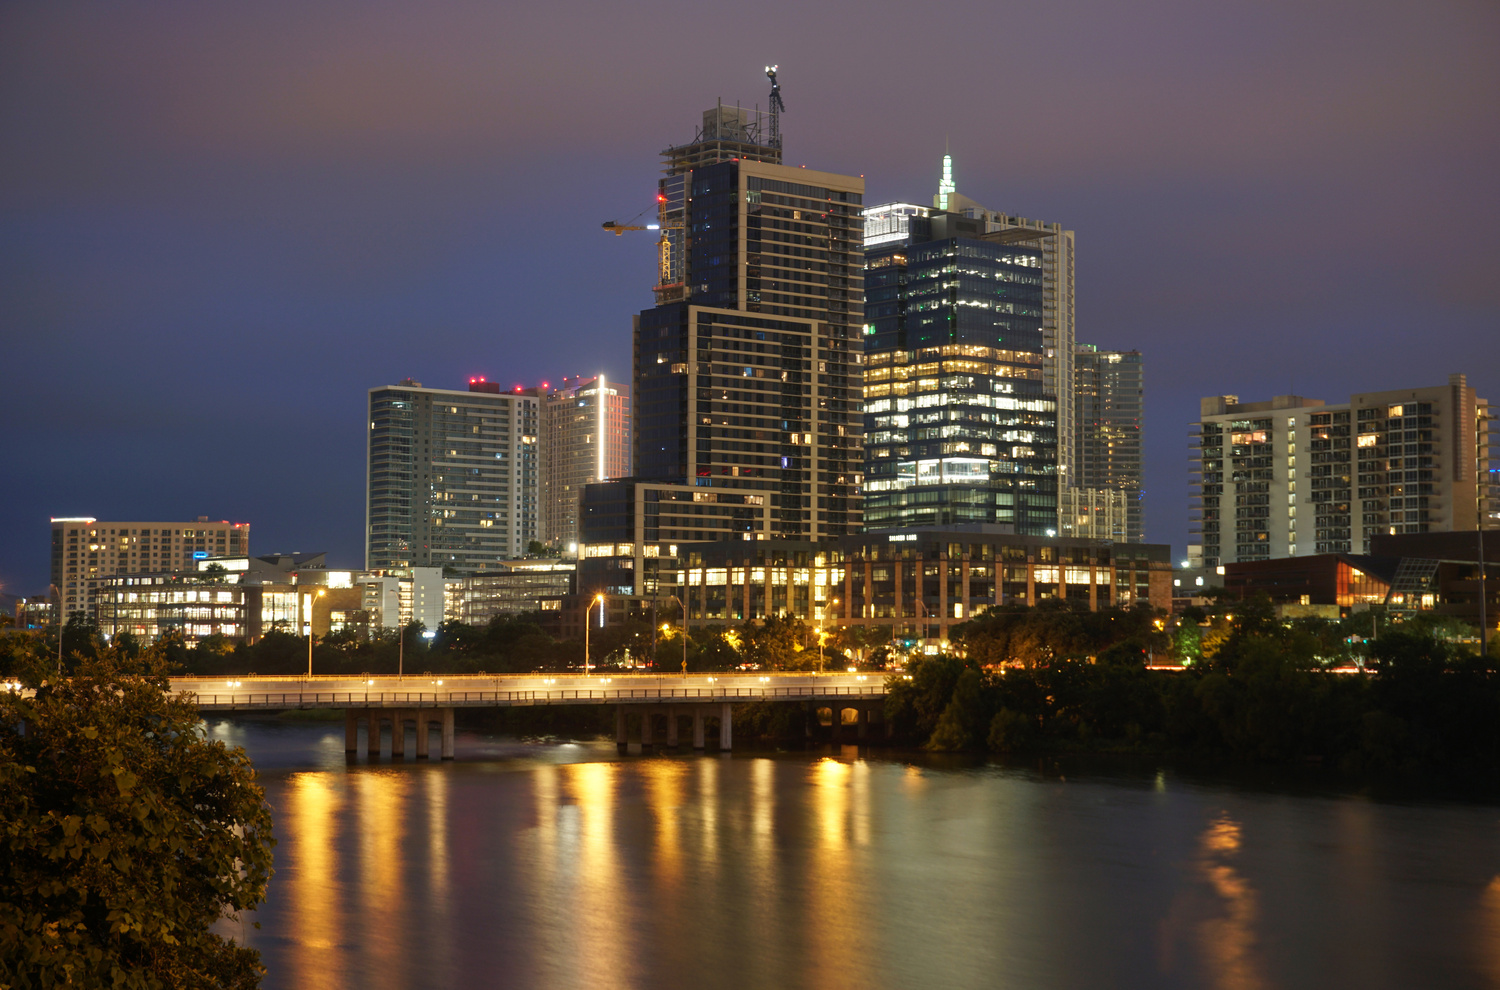 Austin Night River Reflection by Justin Lauria